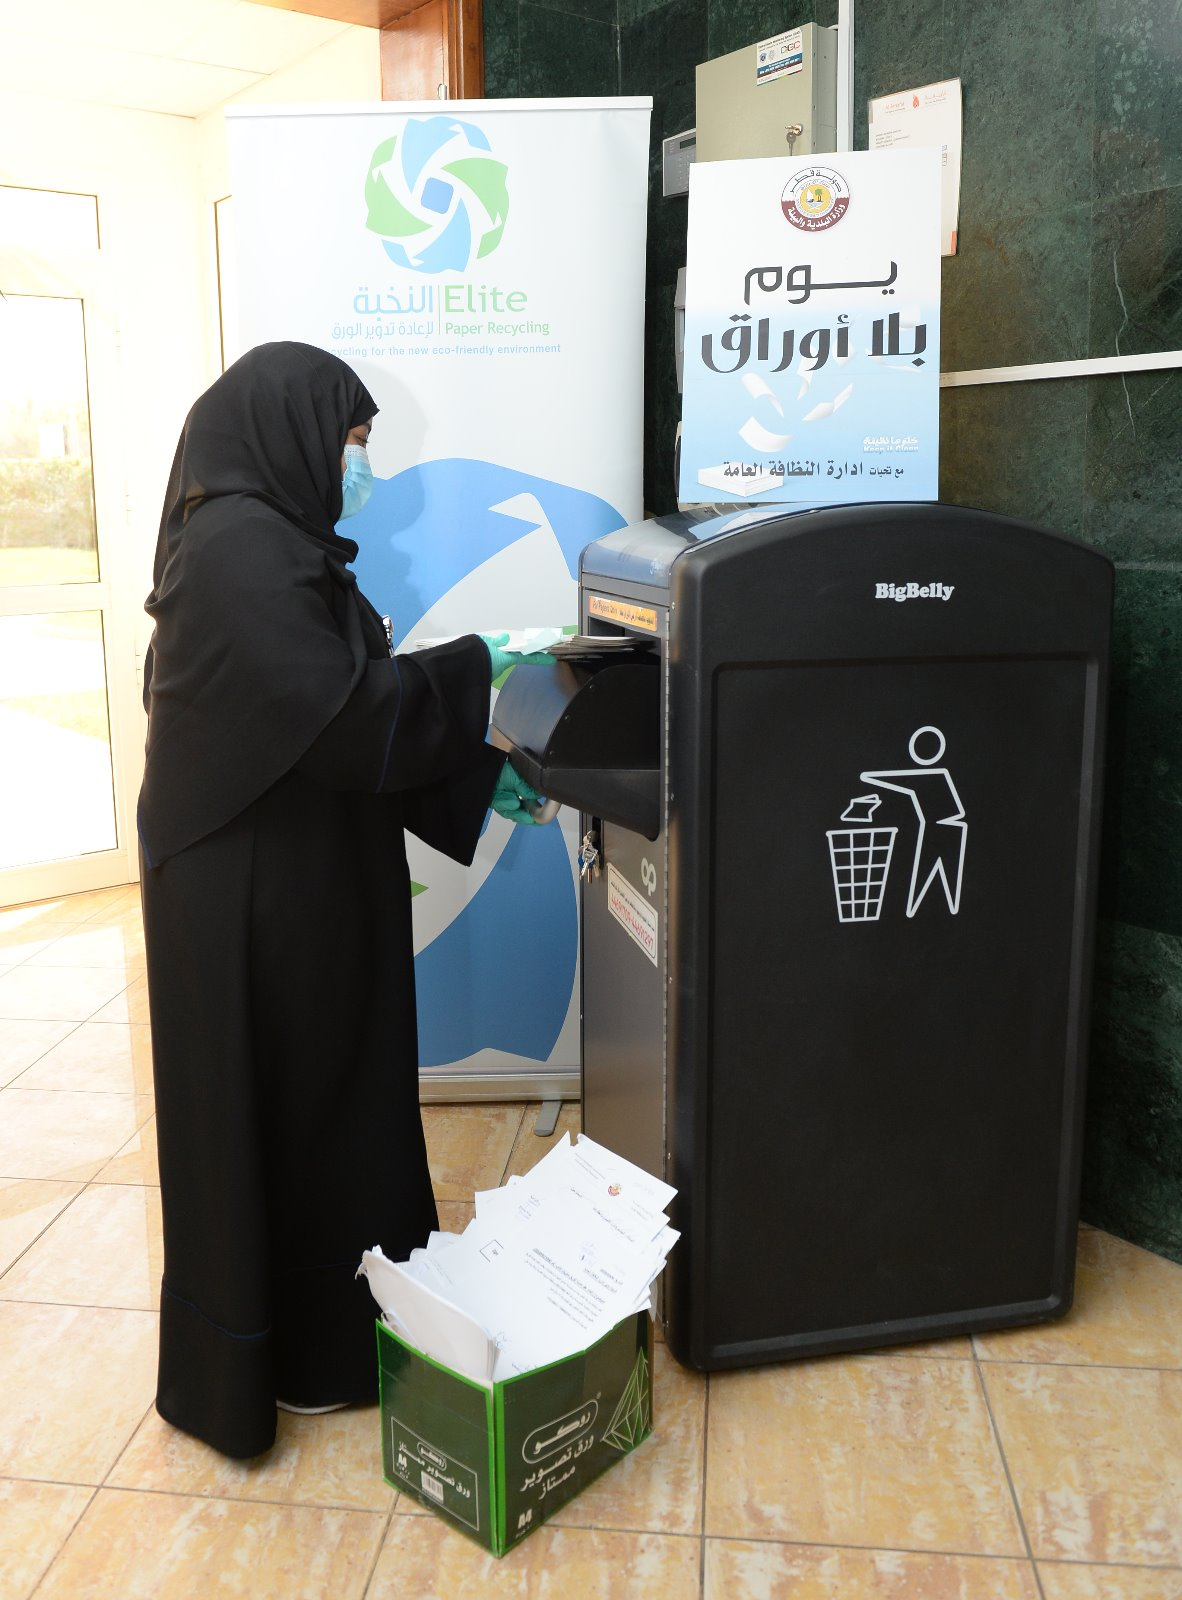 General Cleanliness Department participates in Paperless Day initiative